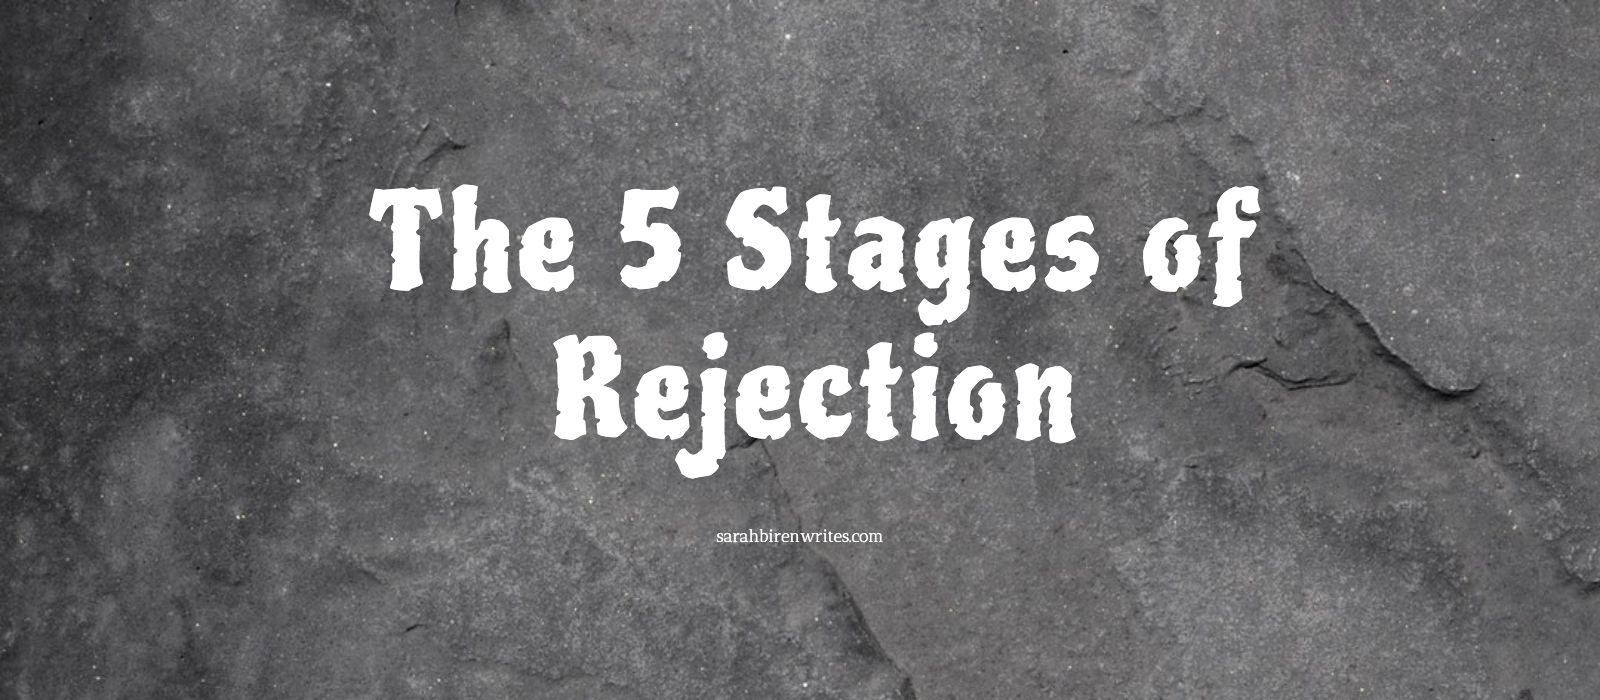 The 5 Stages of Rejection